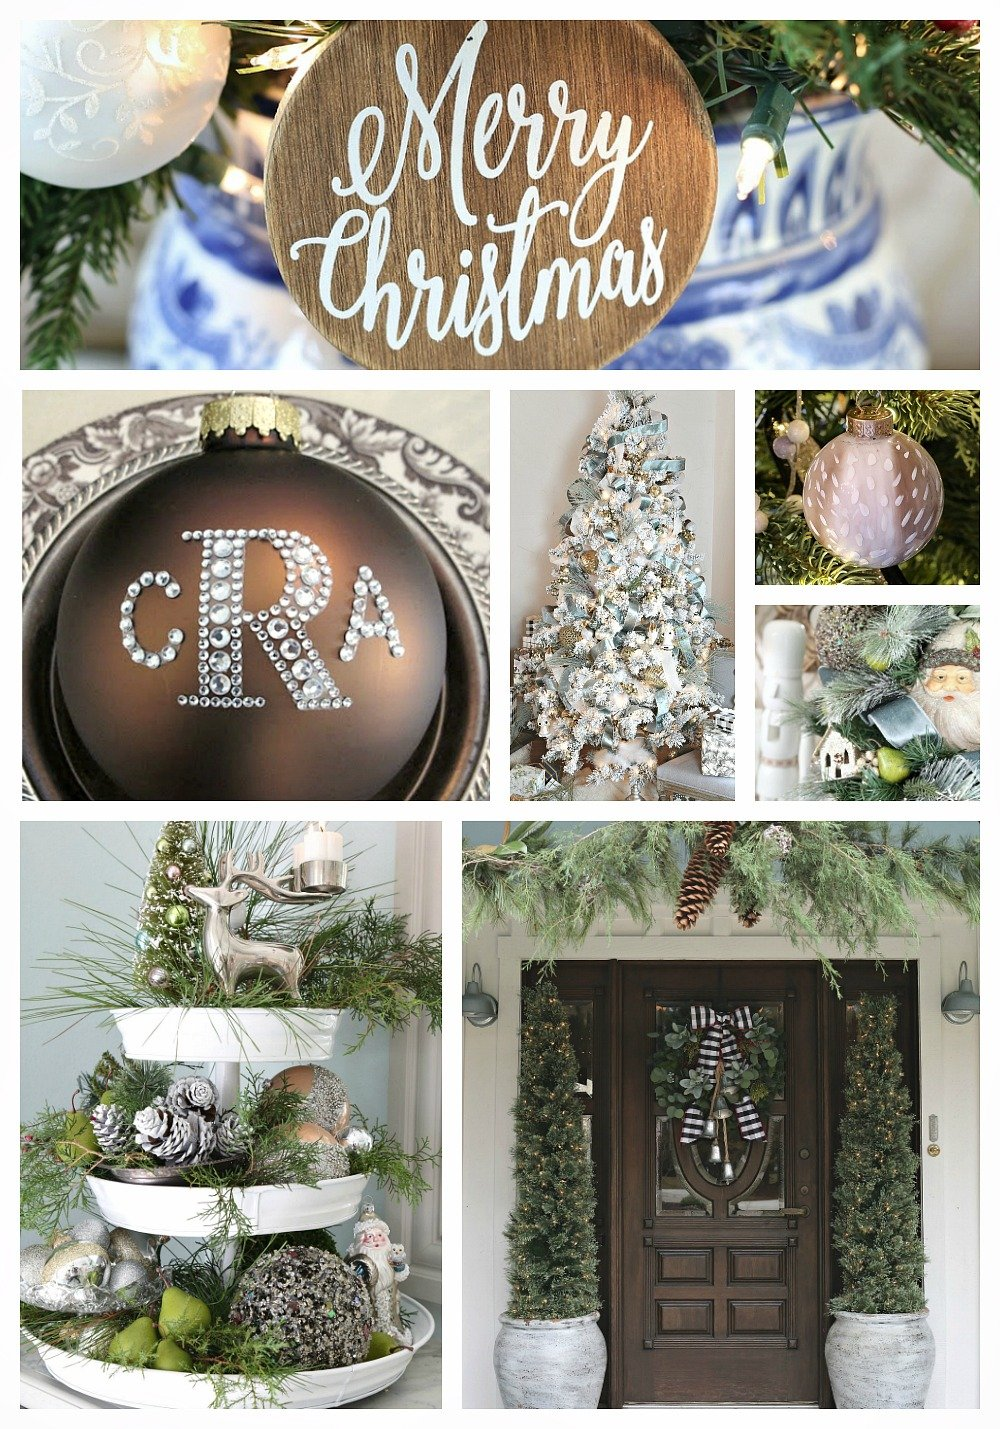 The Creativity Exchange Christmas DIY projects and Decorating Ideas